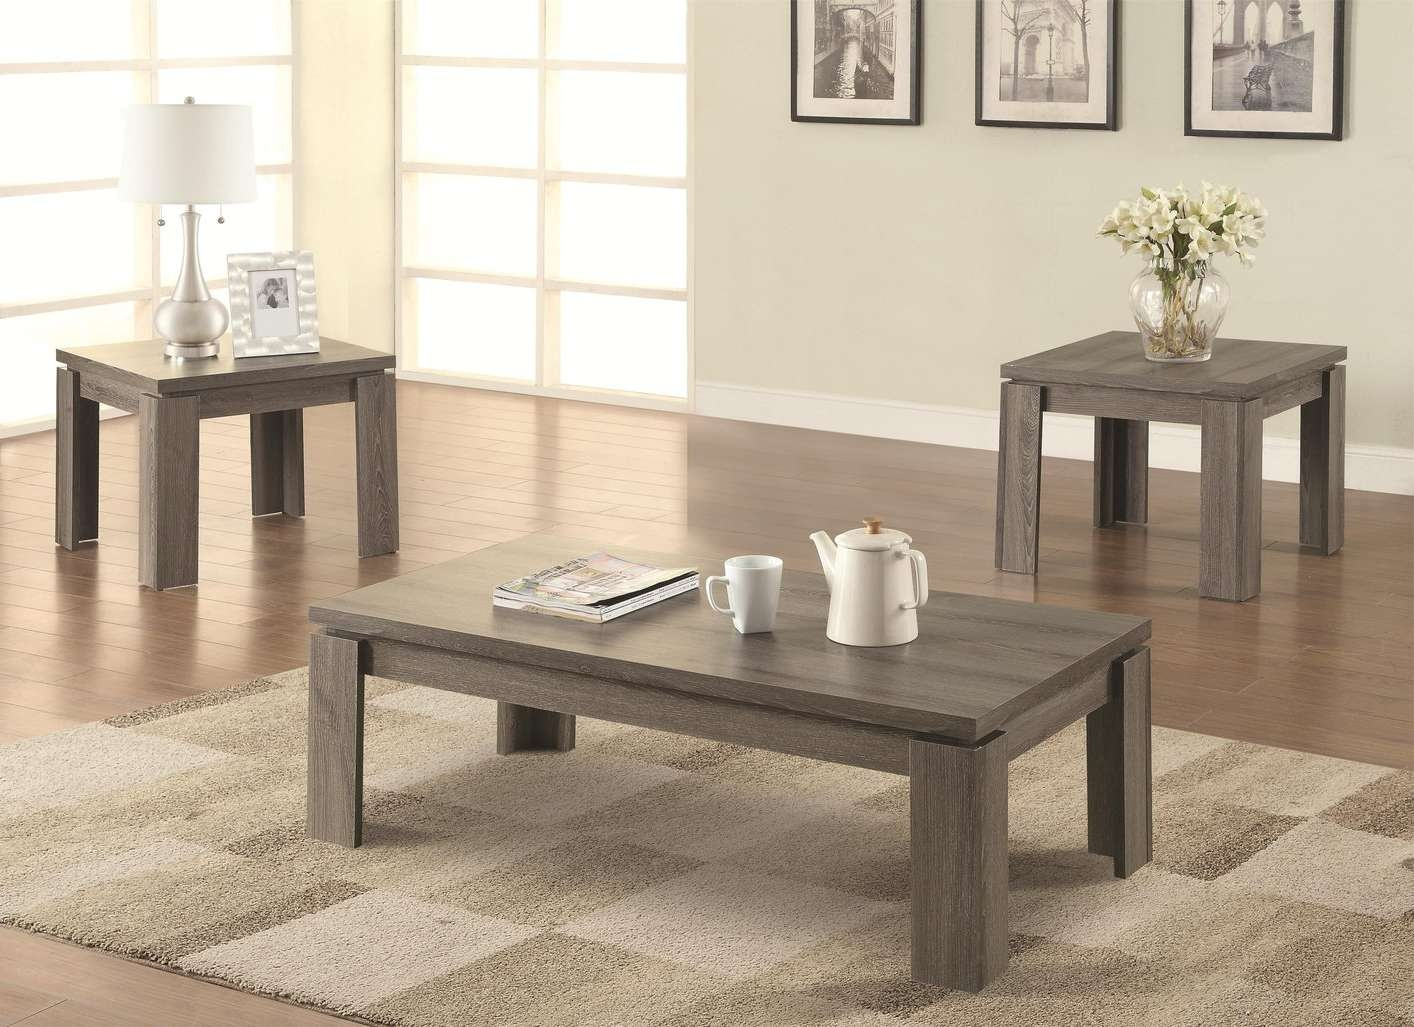 Sleek And Stylish Coffee Table Sets – Bestartisticinteriors With Fashionable Gray Wood Coffee Tables (View 18 of 20)